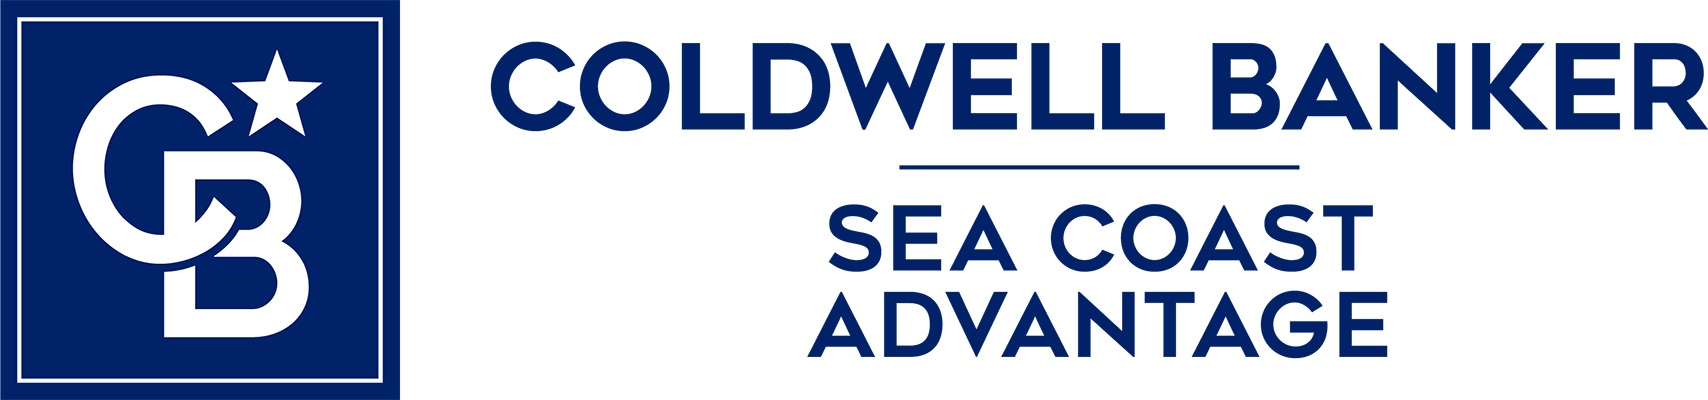 Chris Royal - Coldwell Banker Sea Coast Advantage Realty